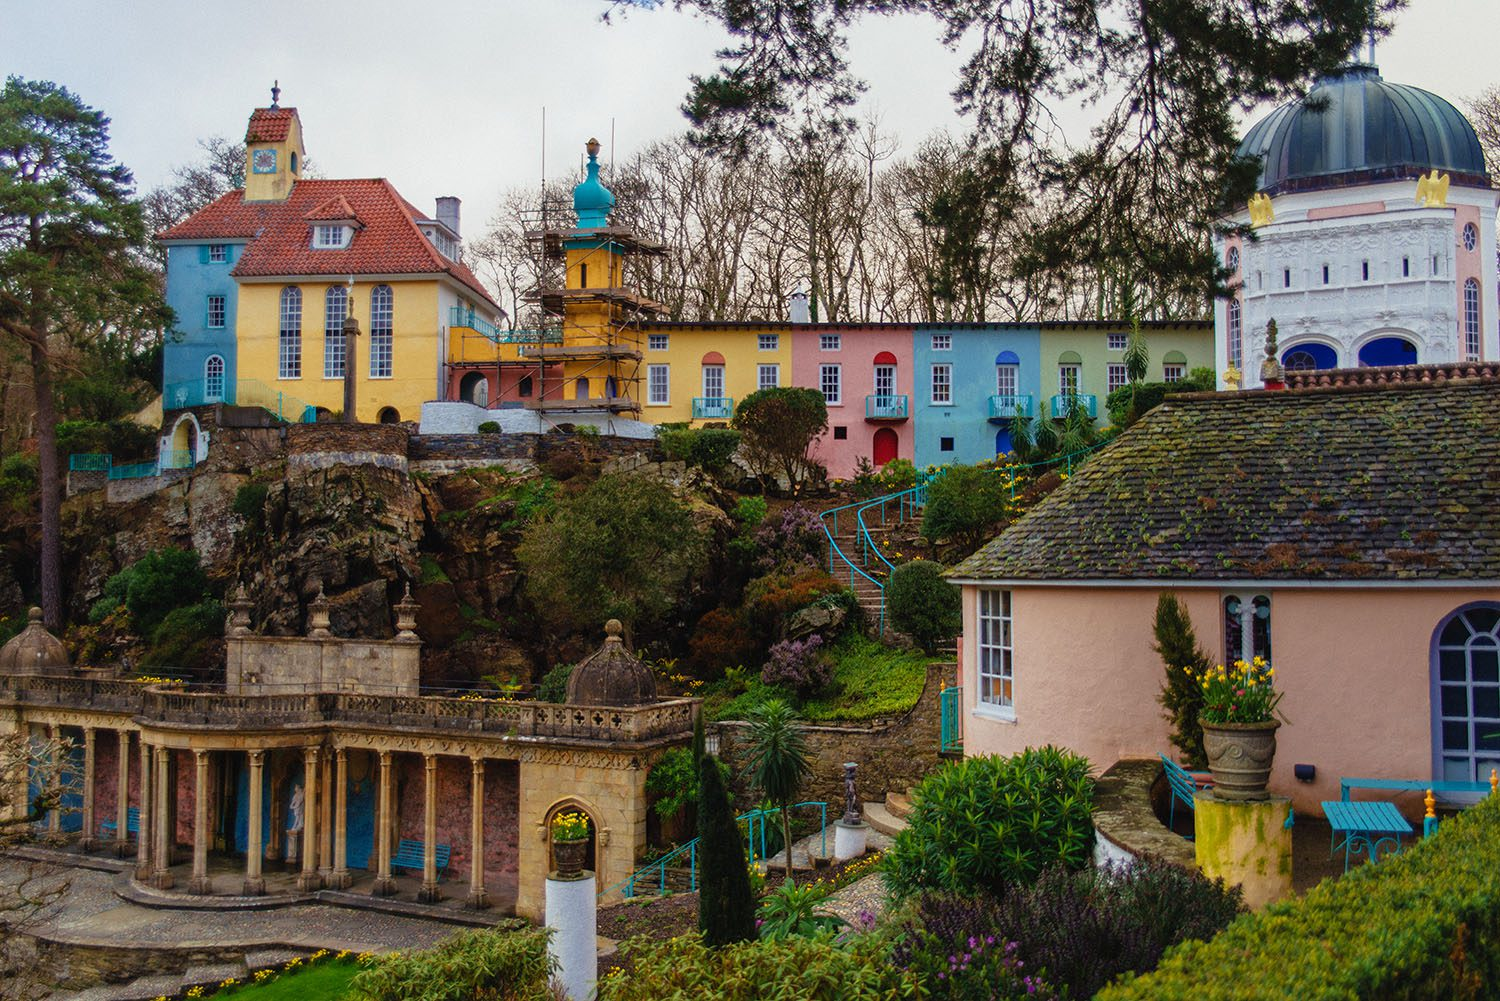 Portmeirion Village in Wales